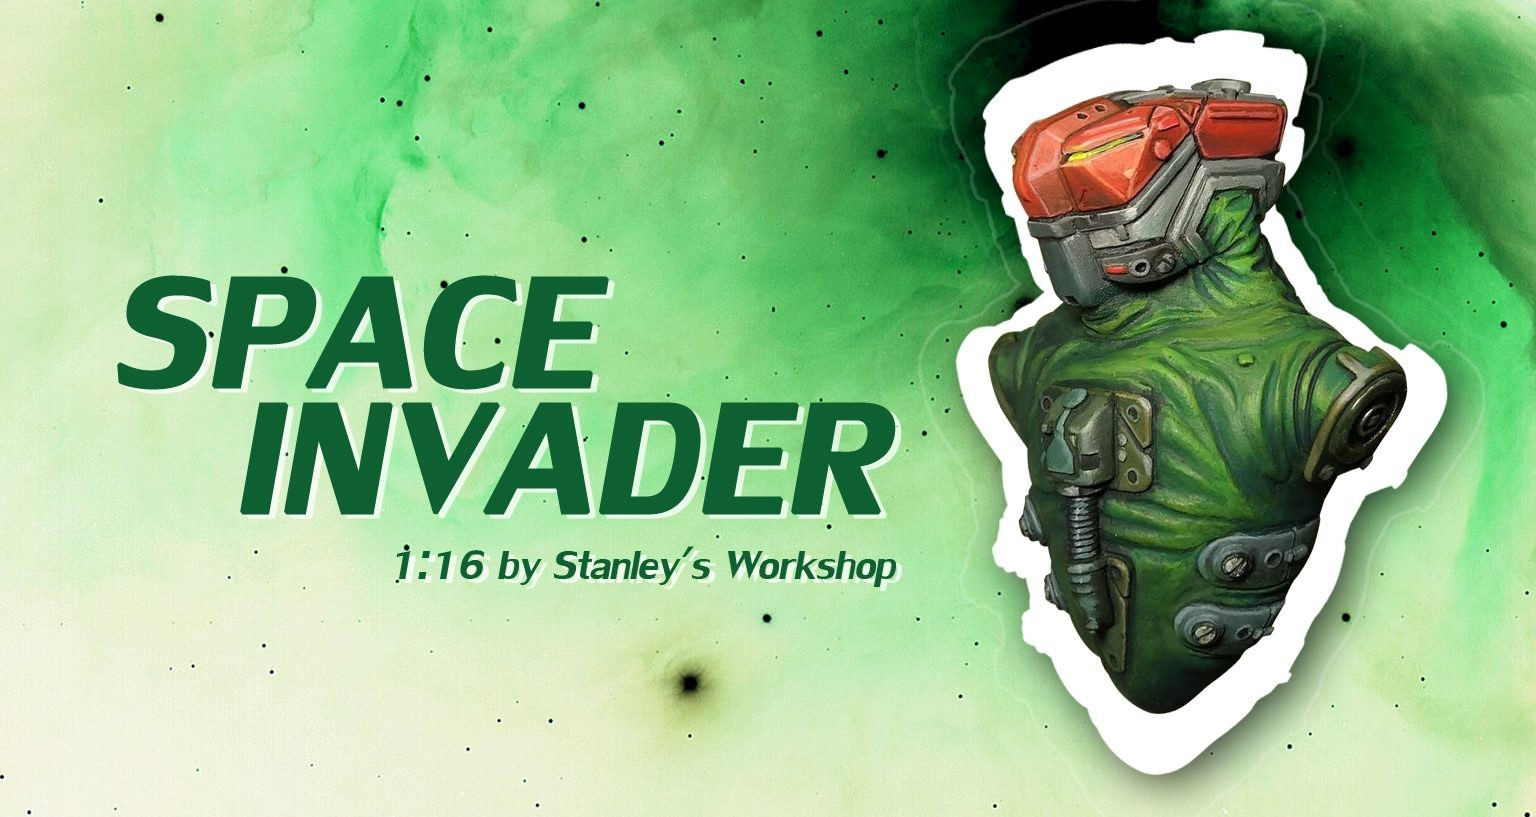 Space Invader / 1:16 / Stanley's Workshop